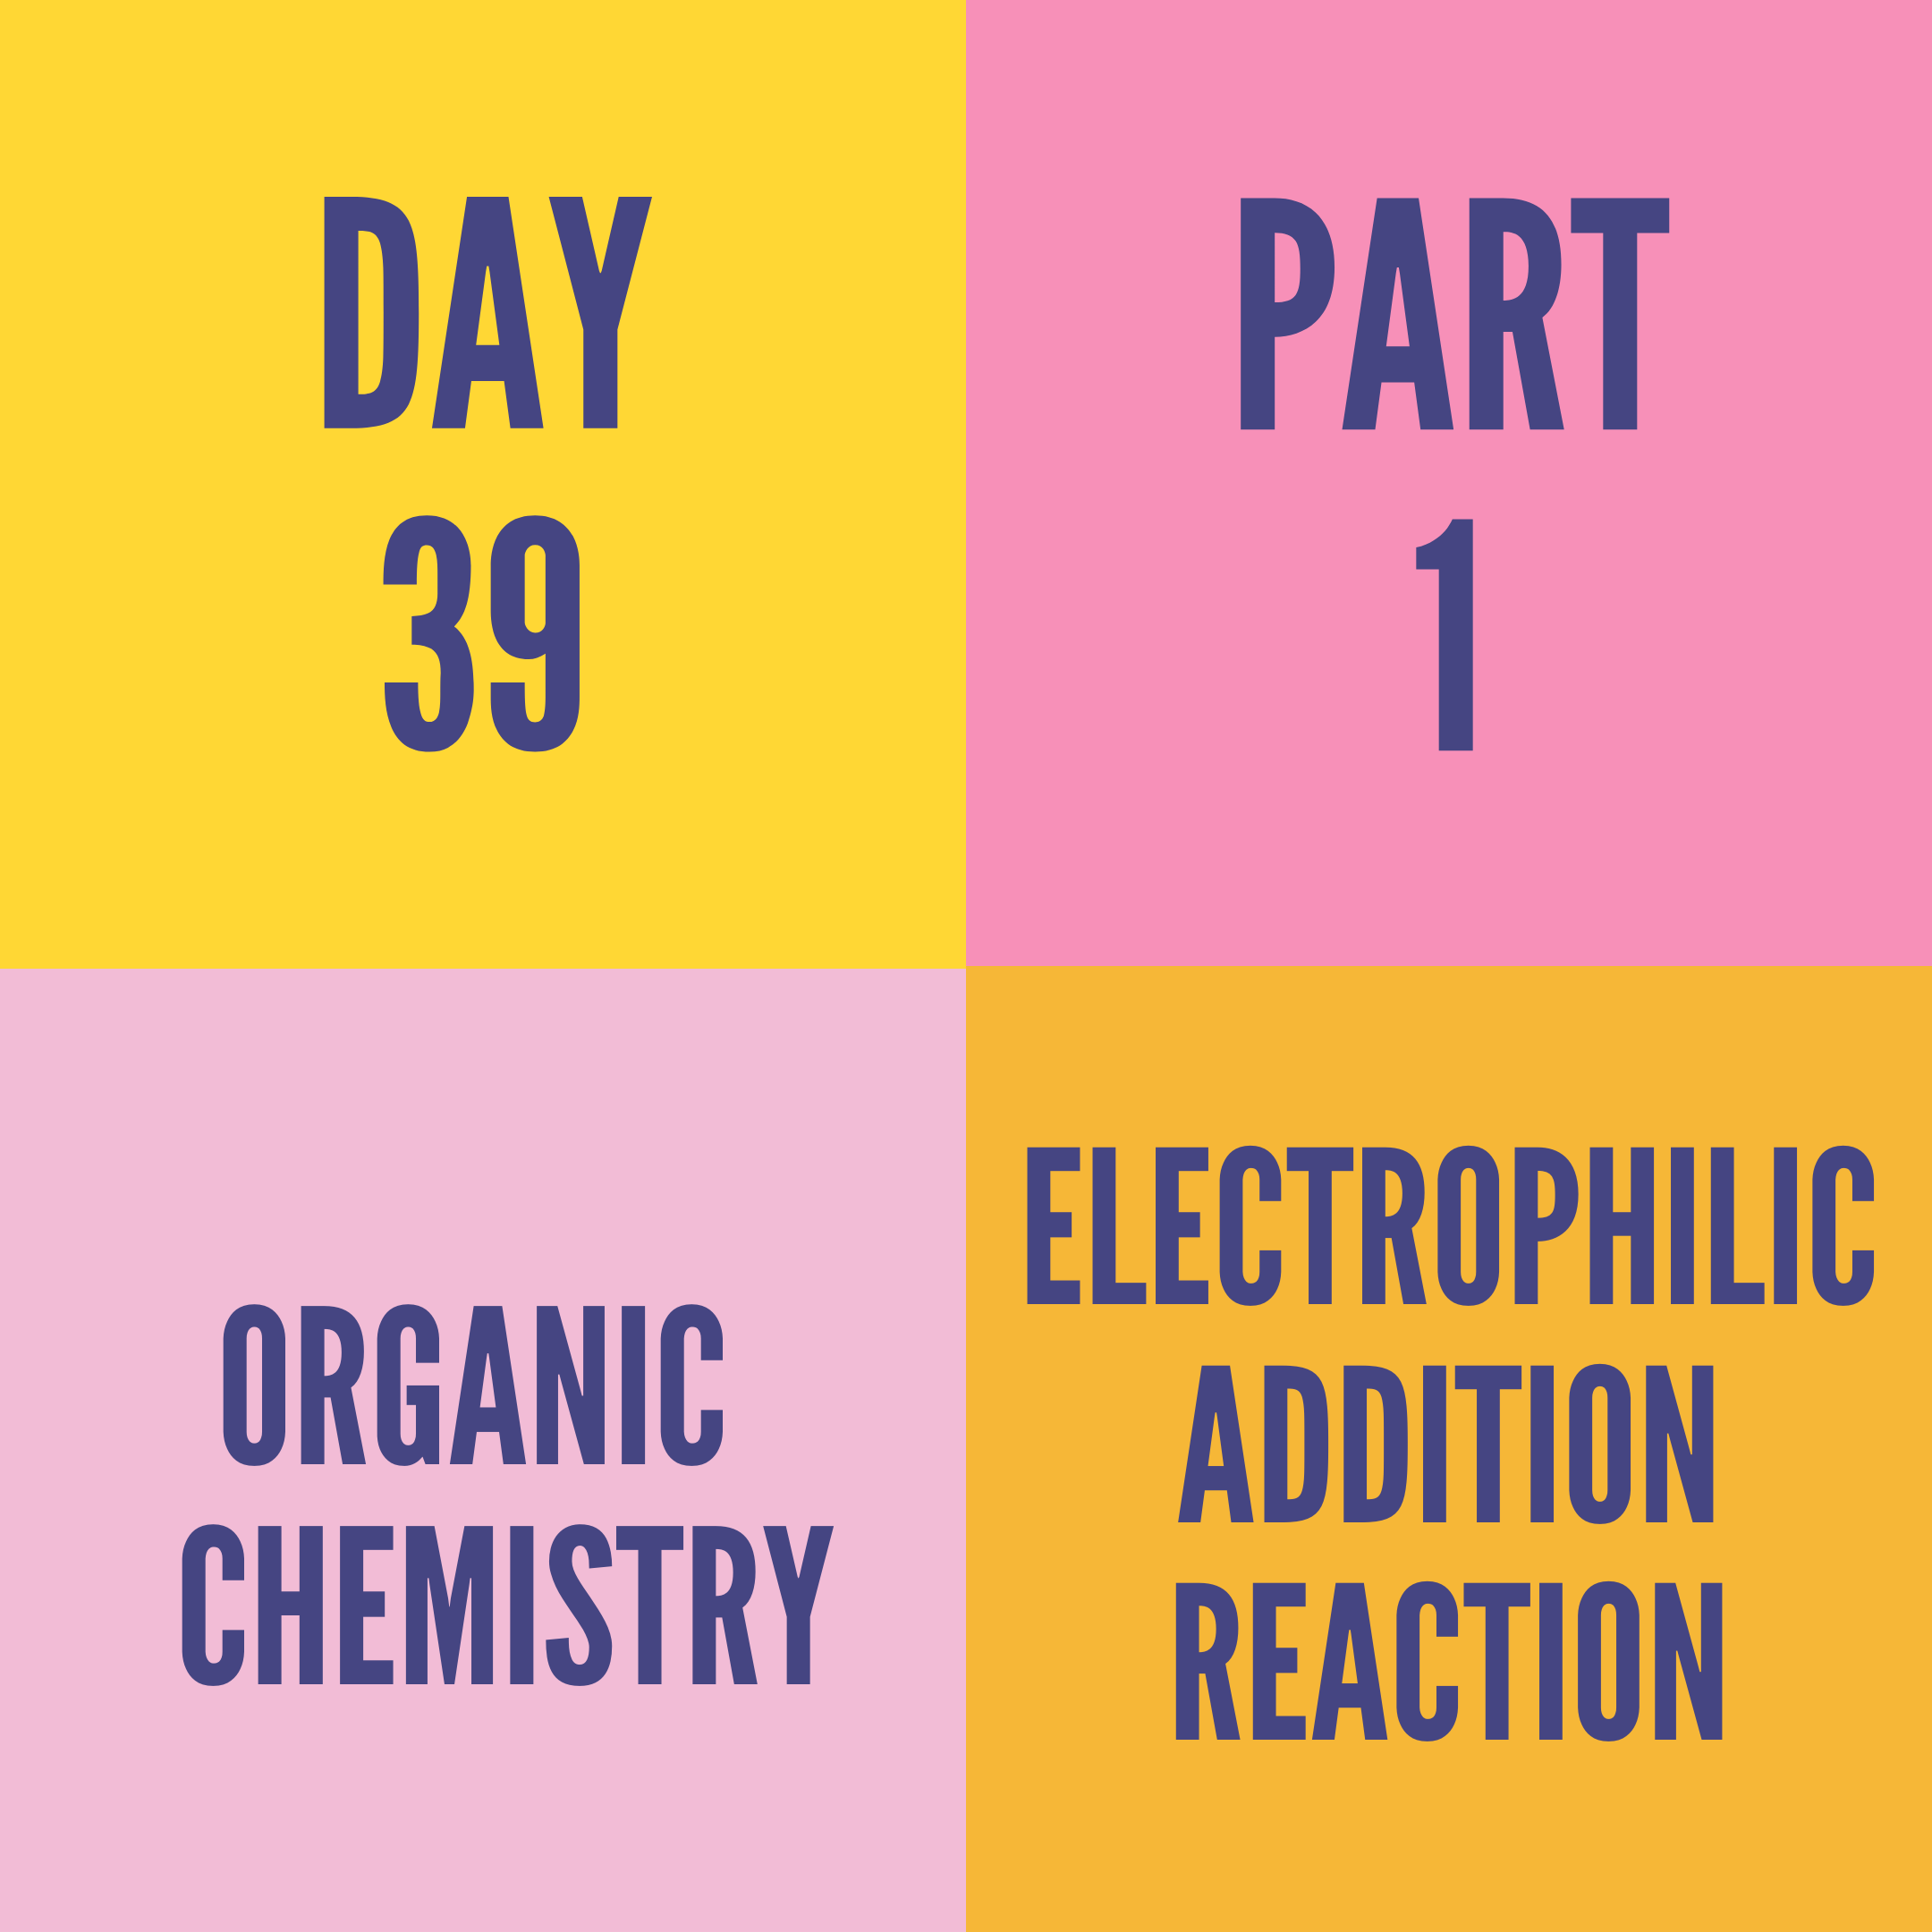 DAY-39 PART-1 ELECTROPHILIC ADDITION REACTION